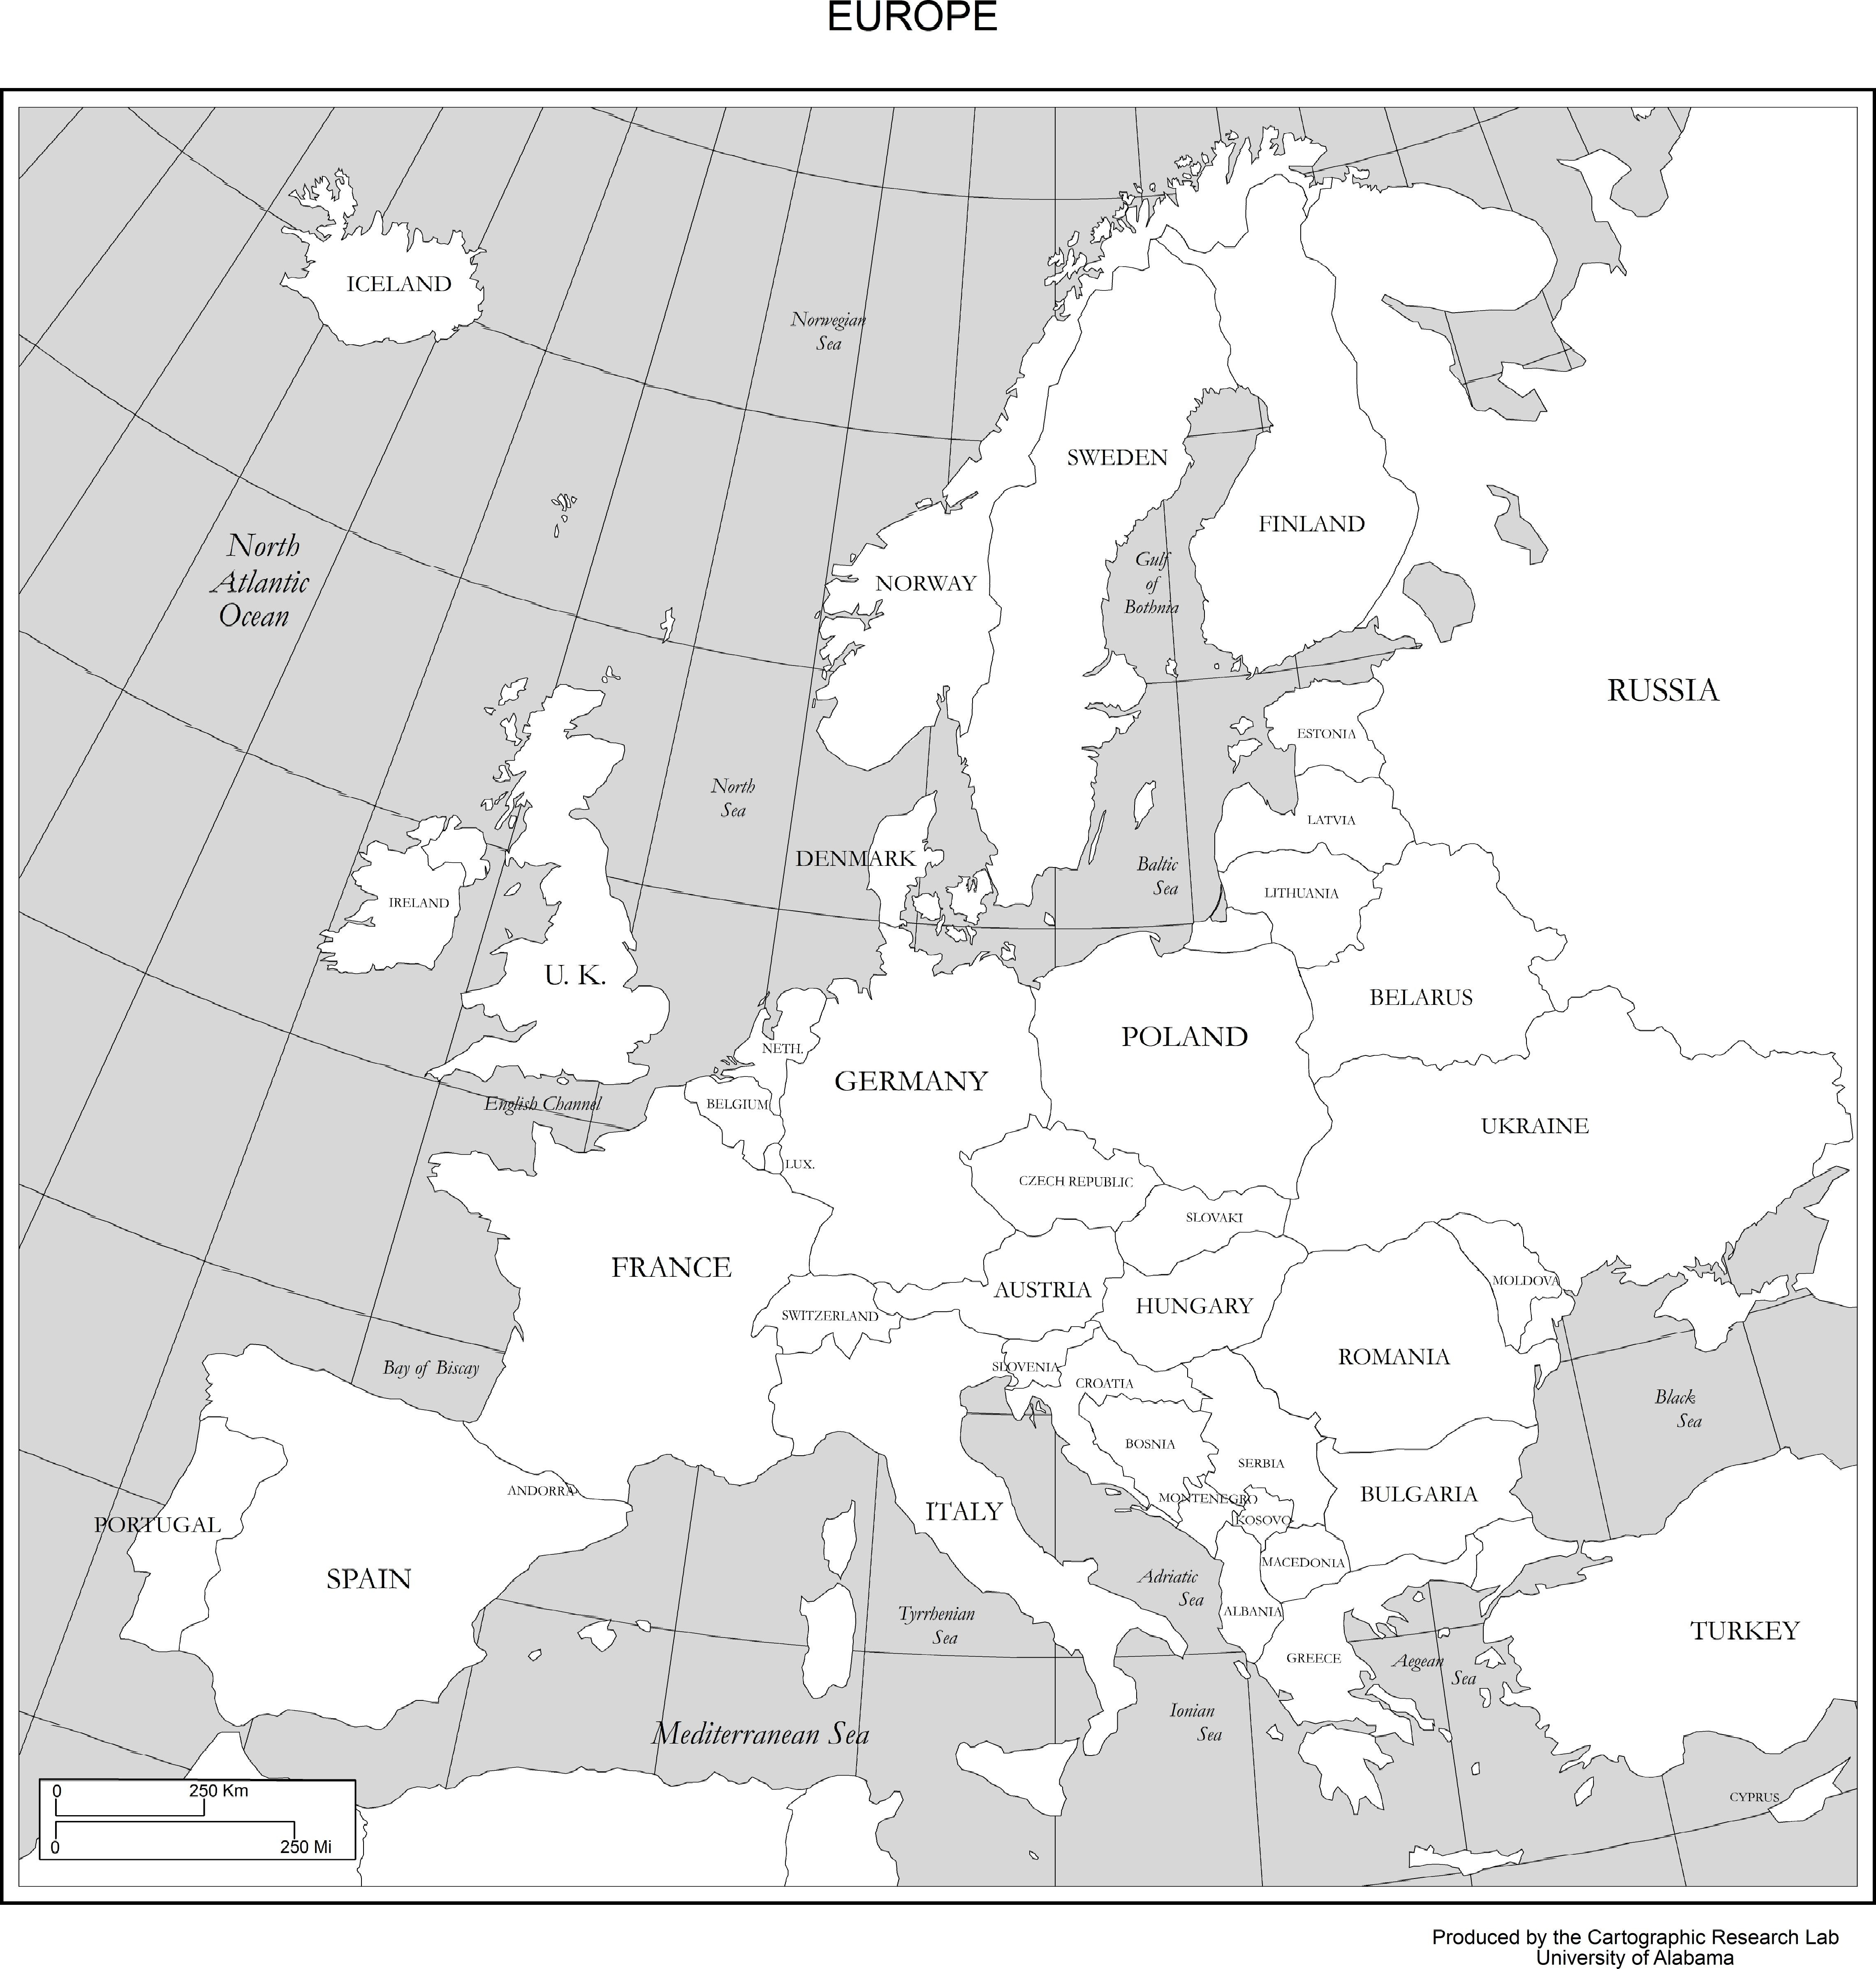 Maps Of Europe - Free Printable Map Of Europe With Cities